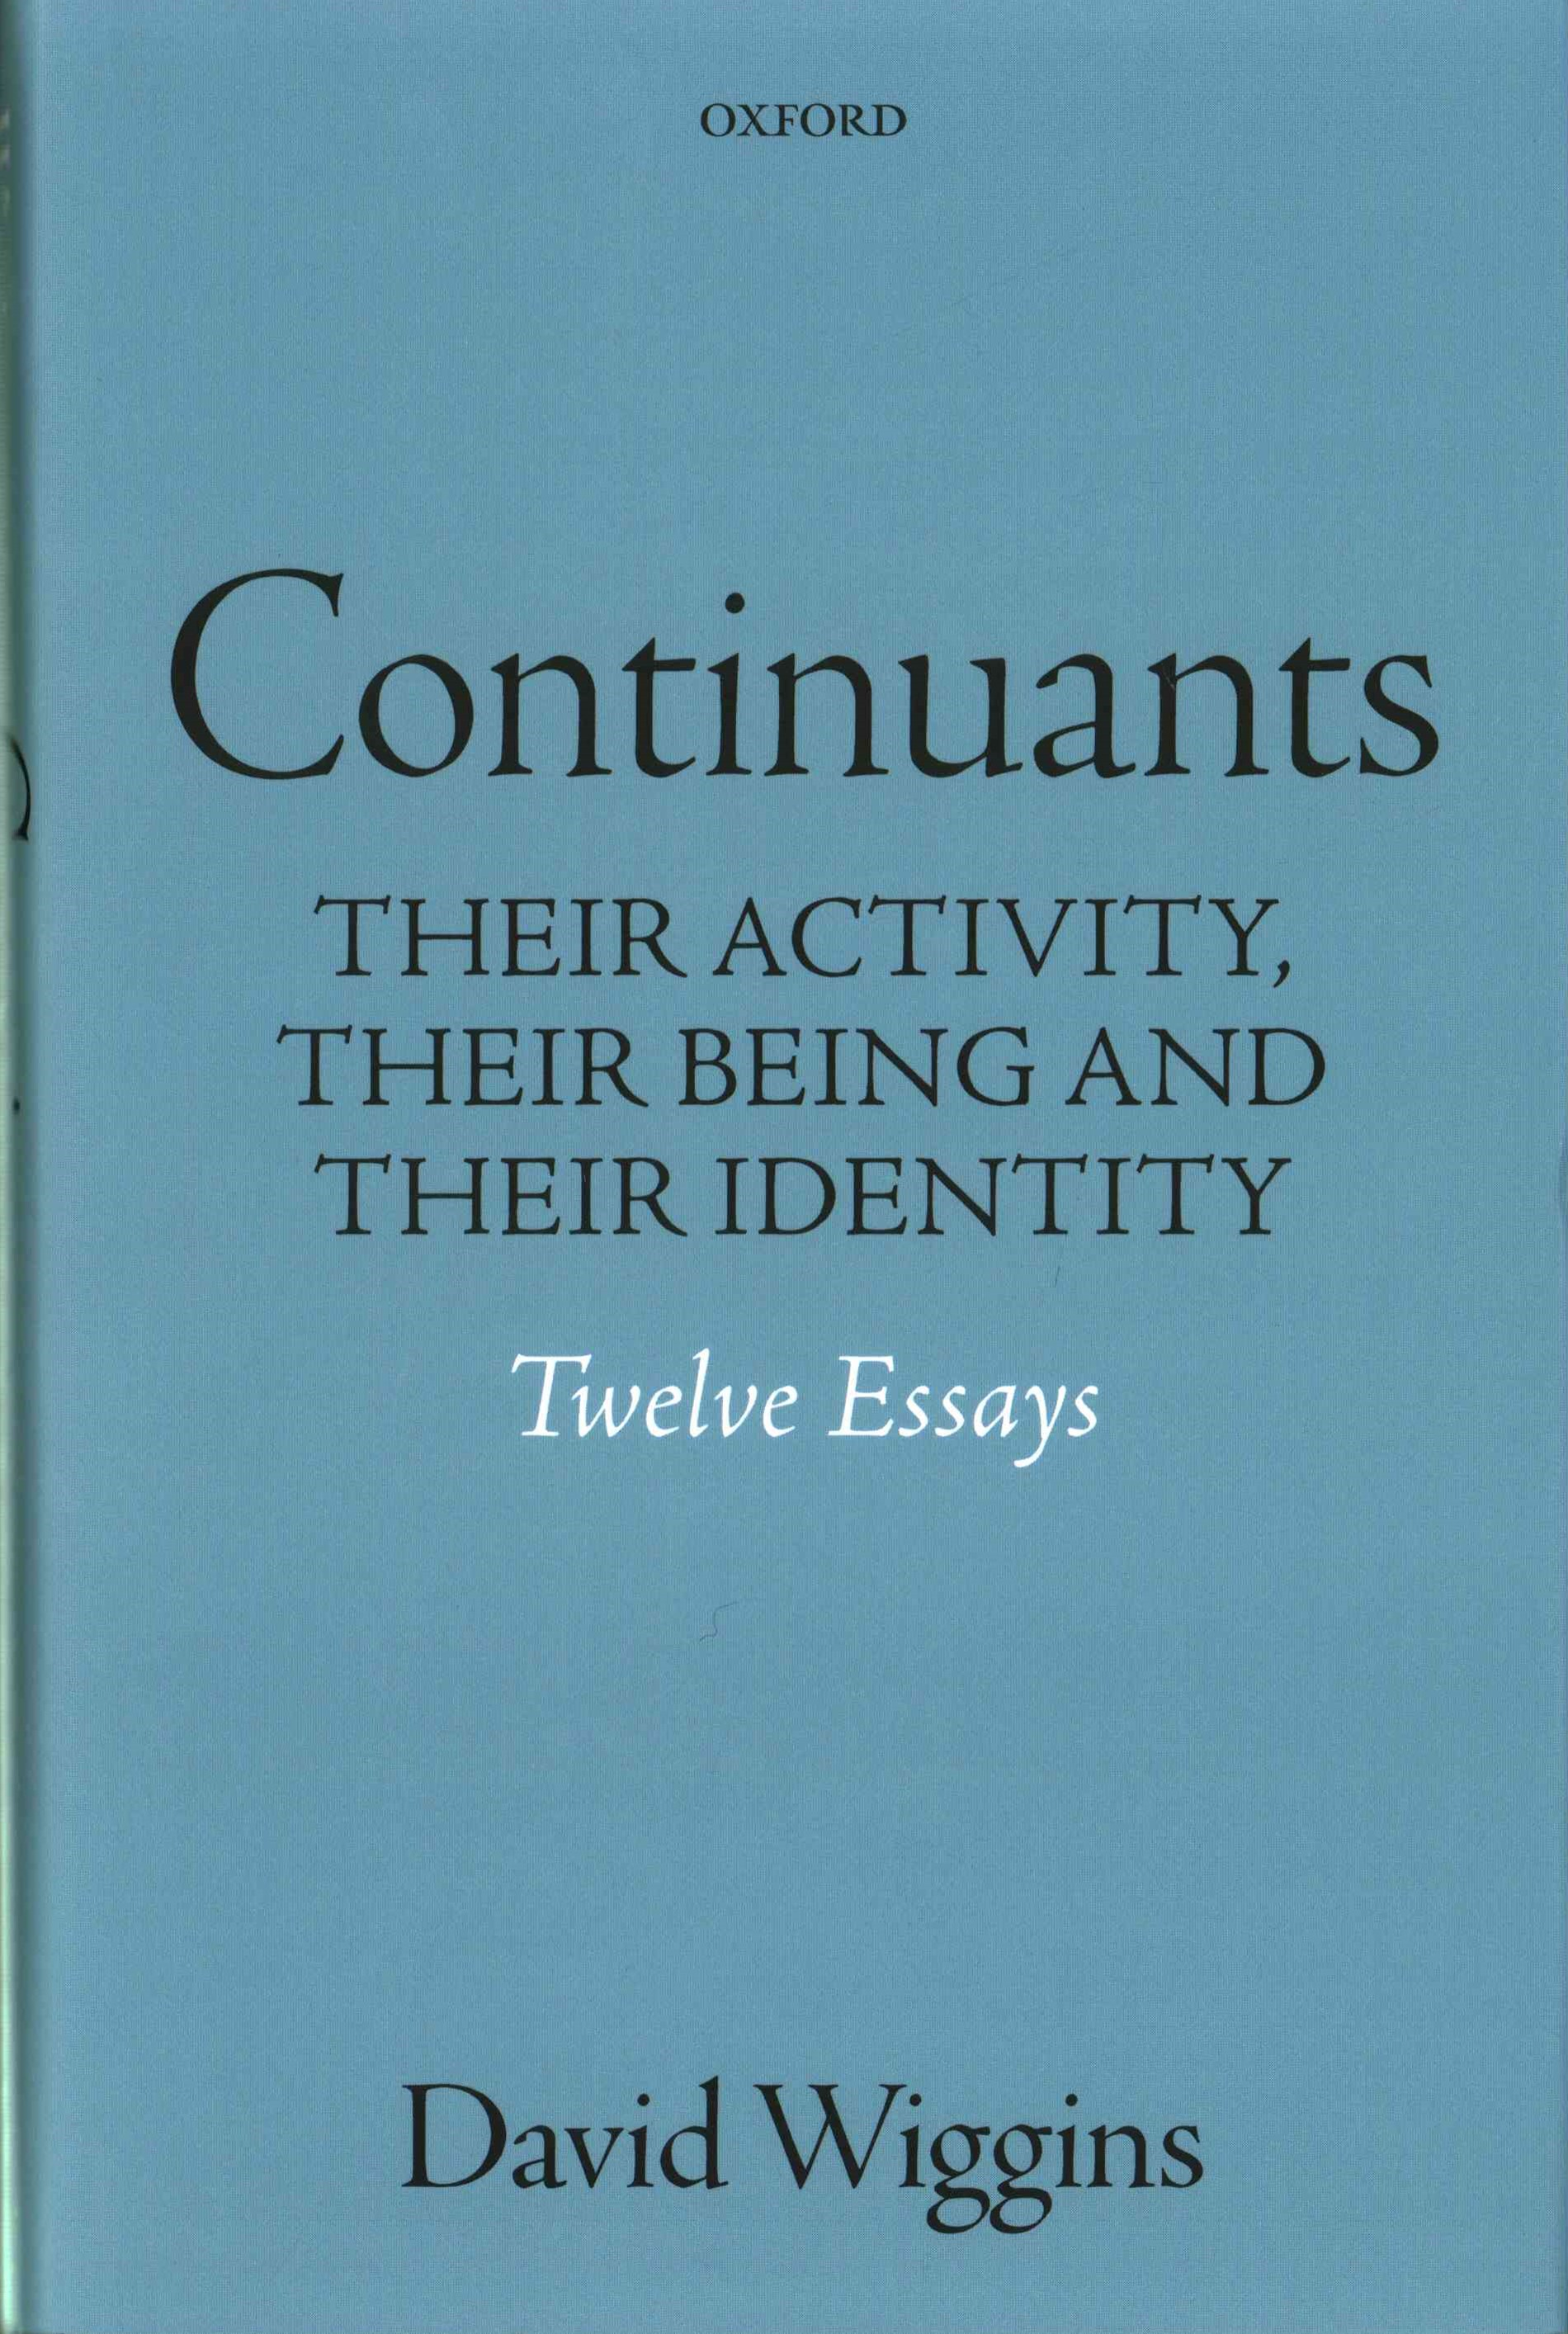 Essays on Identity and Substance